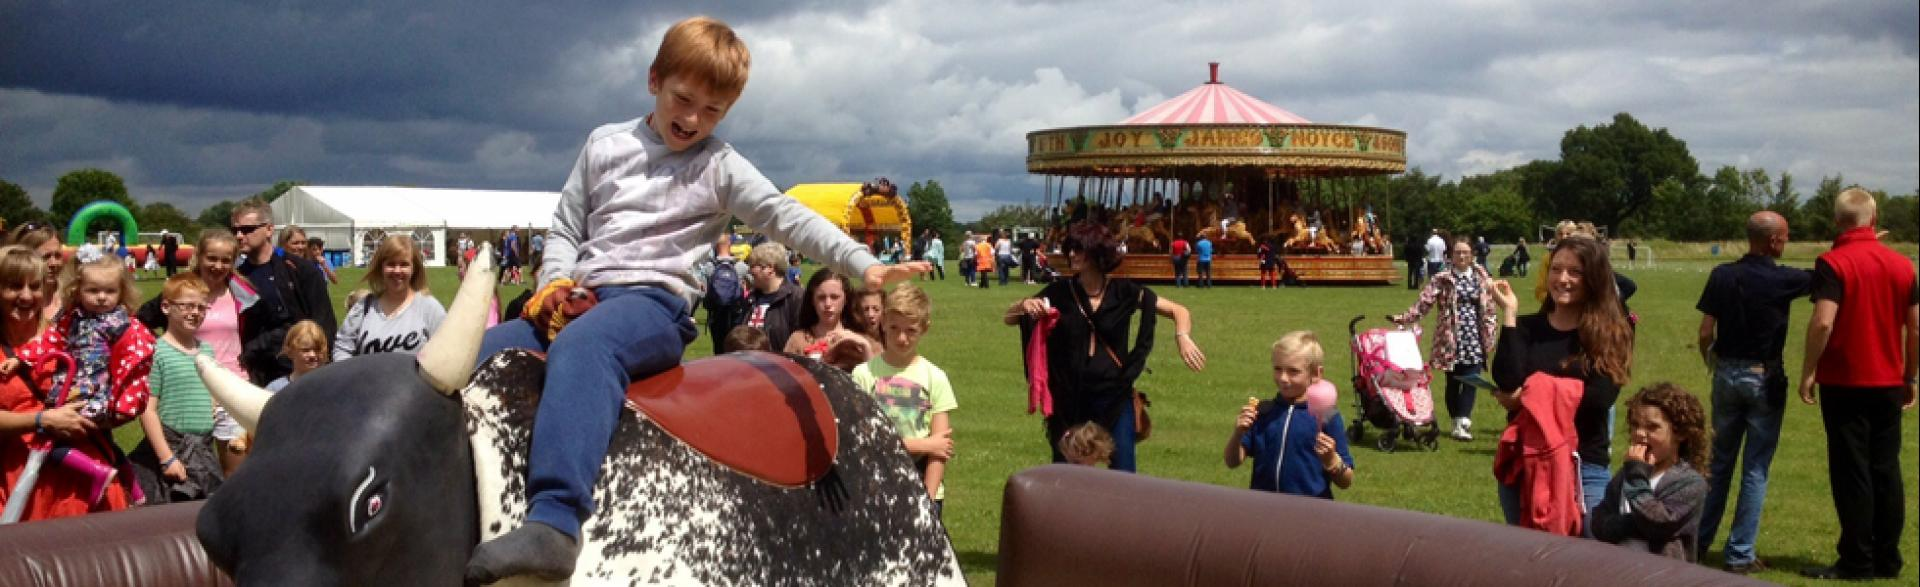 Corporate Family Fun Day, Surrey, July 2014